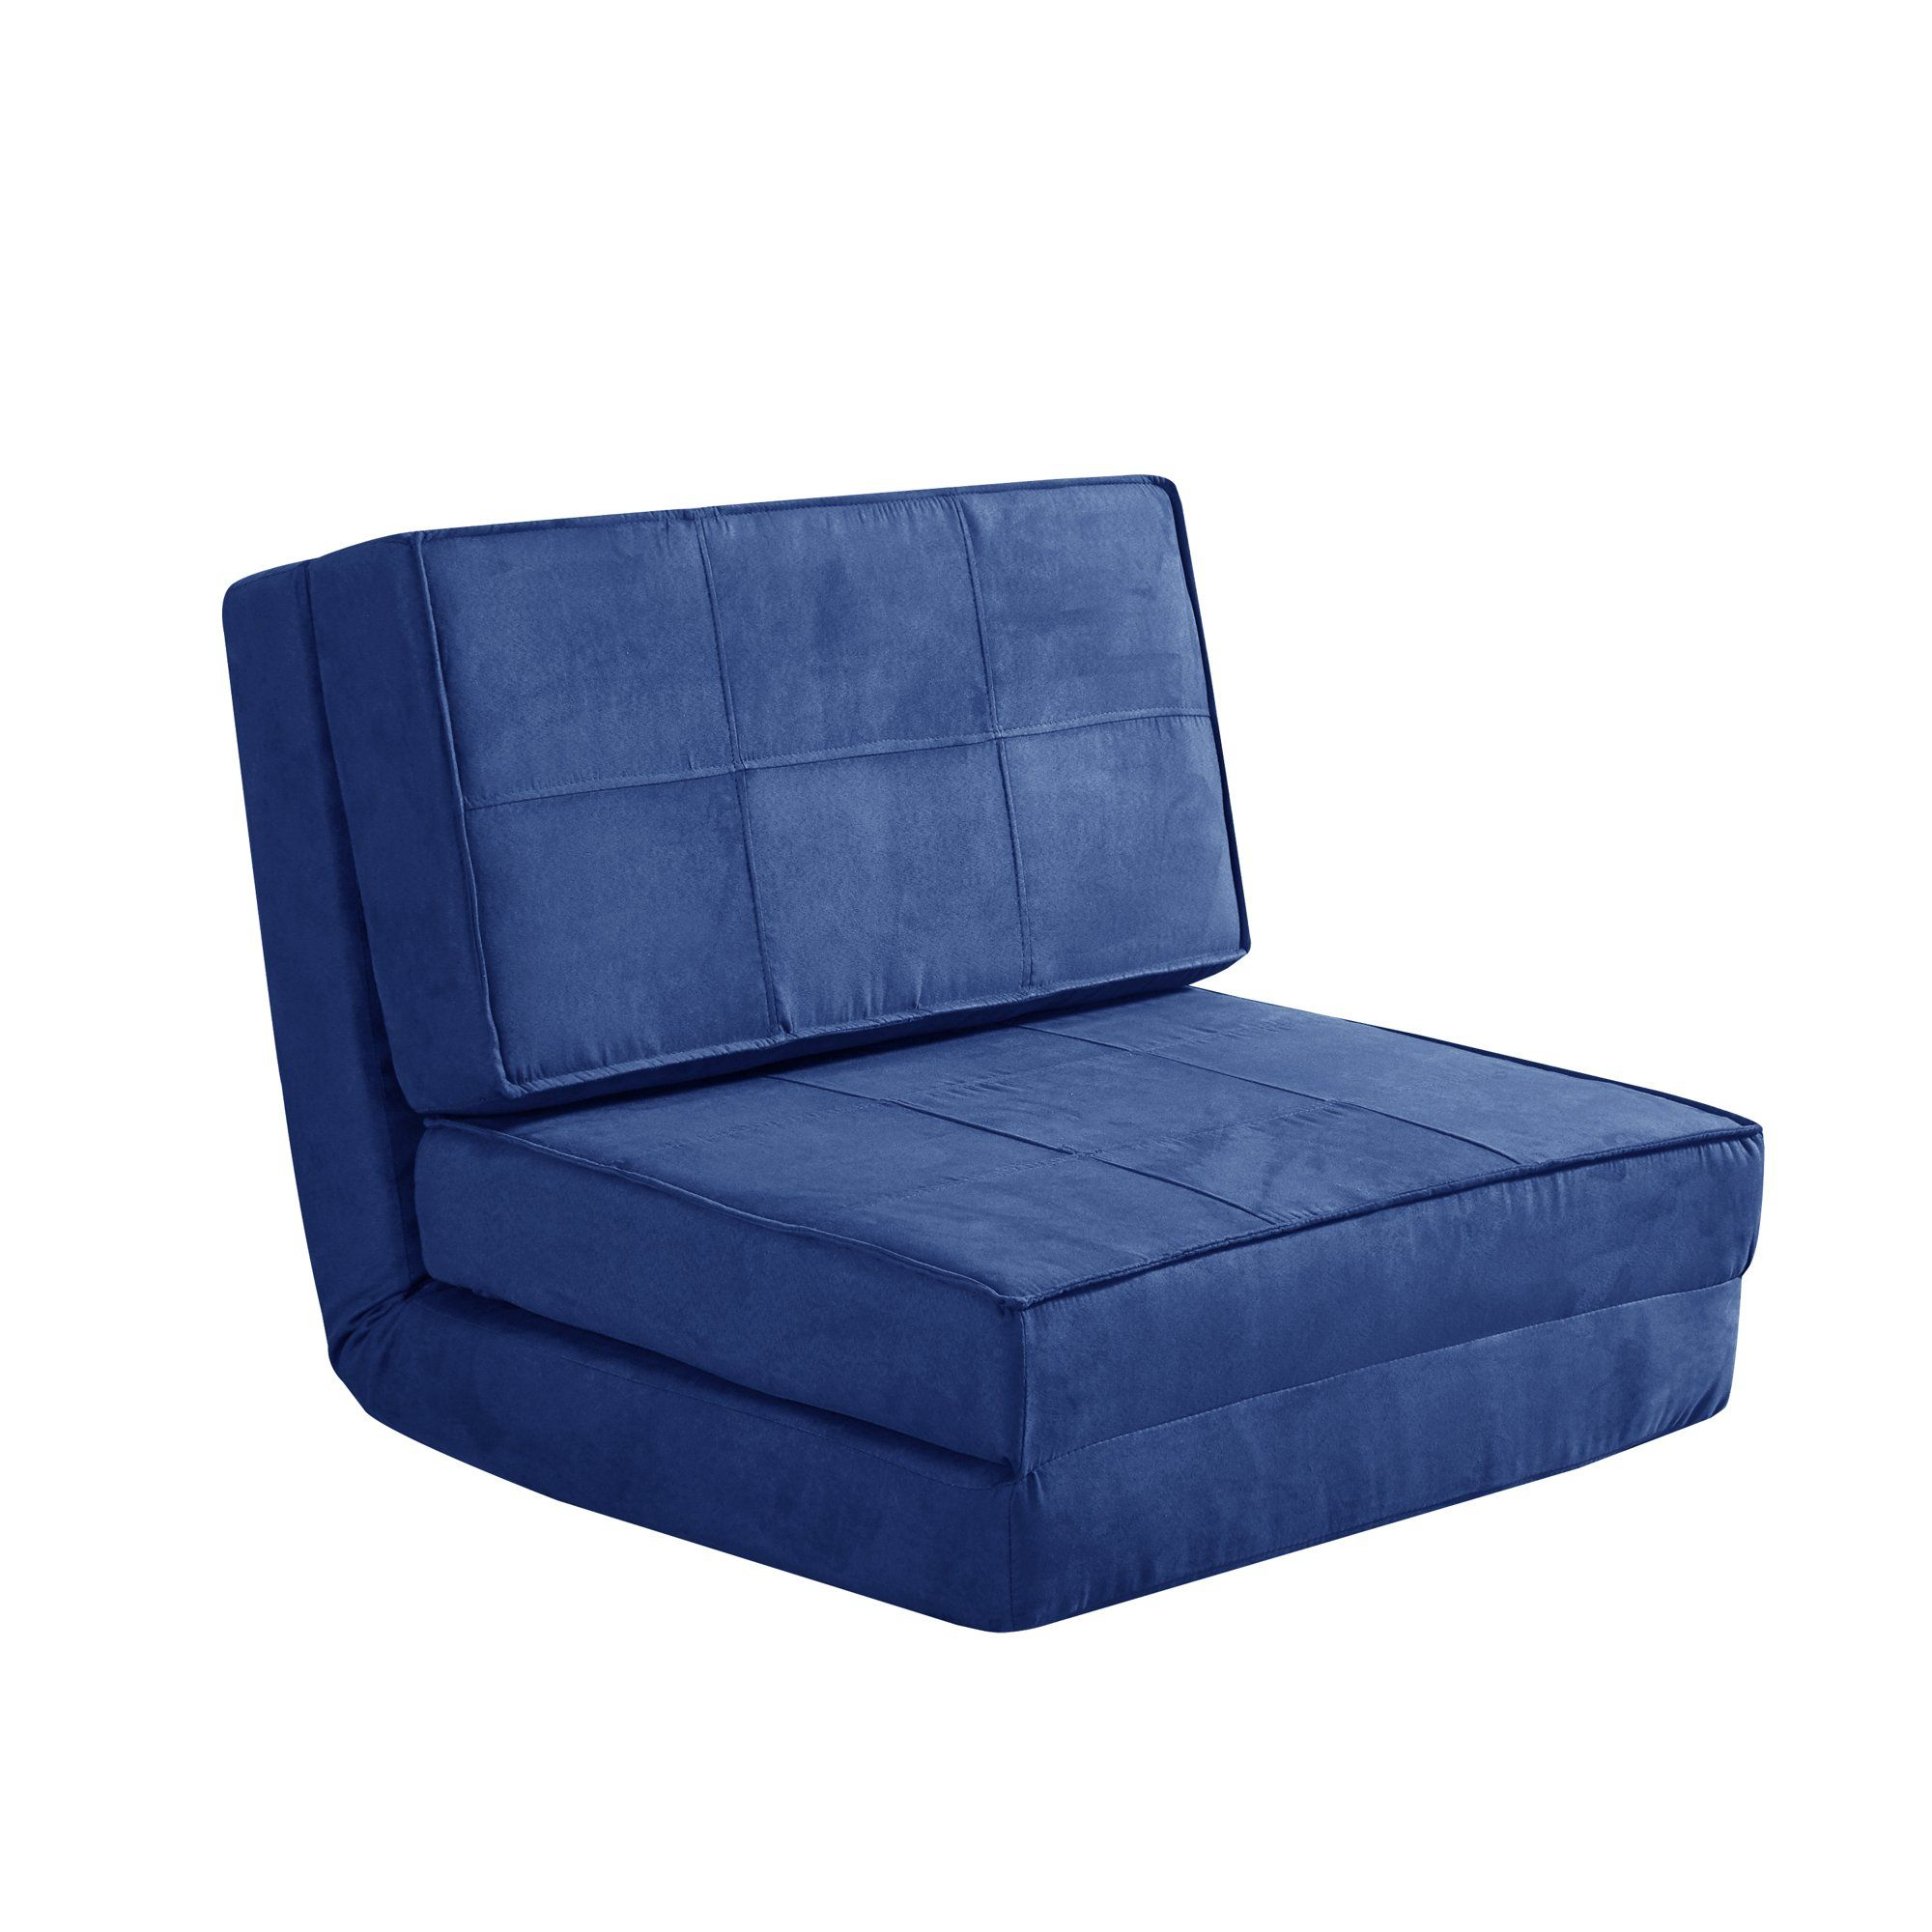 Your Zone Navy Flip Chair Available In Multiple Colors Walmart Com In 2020 Kids Lounge Chair Small Apartment Room Sleeper Chair